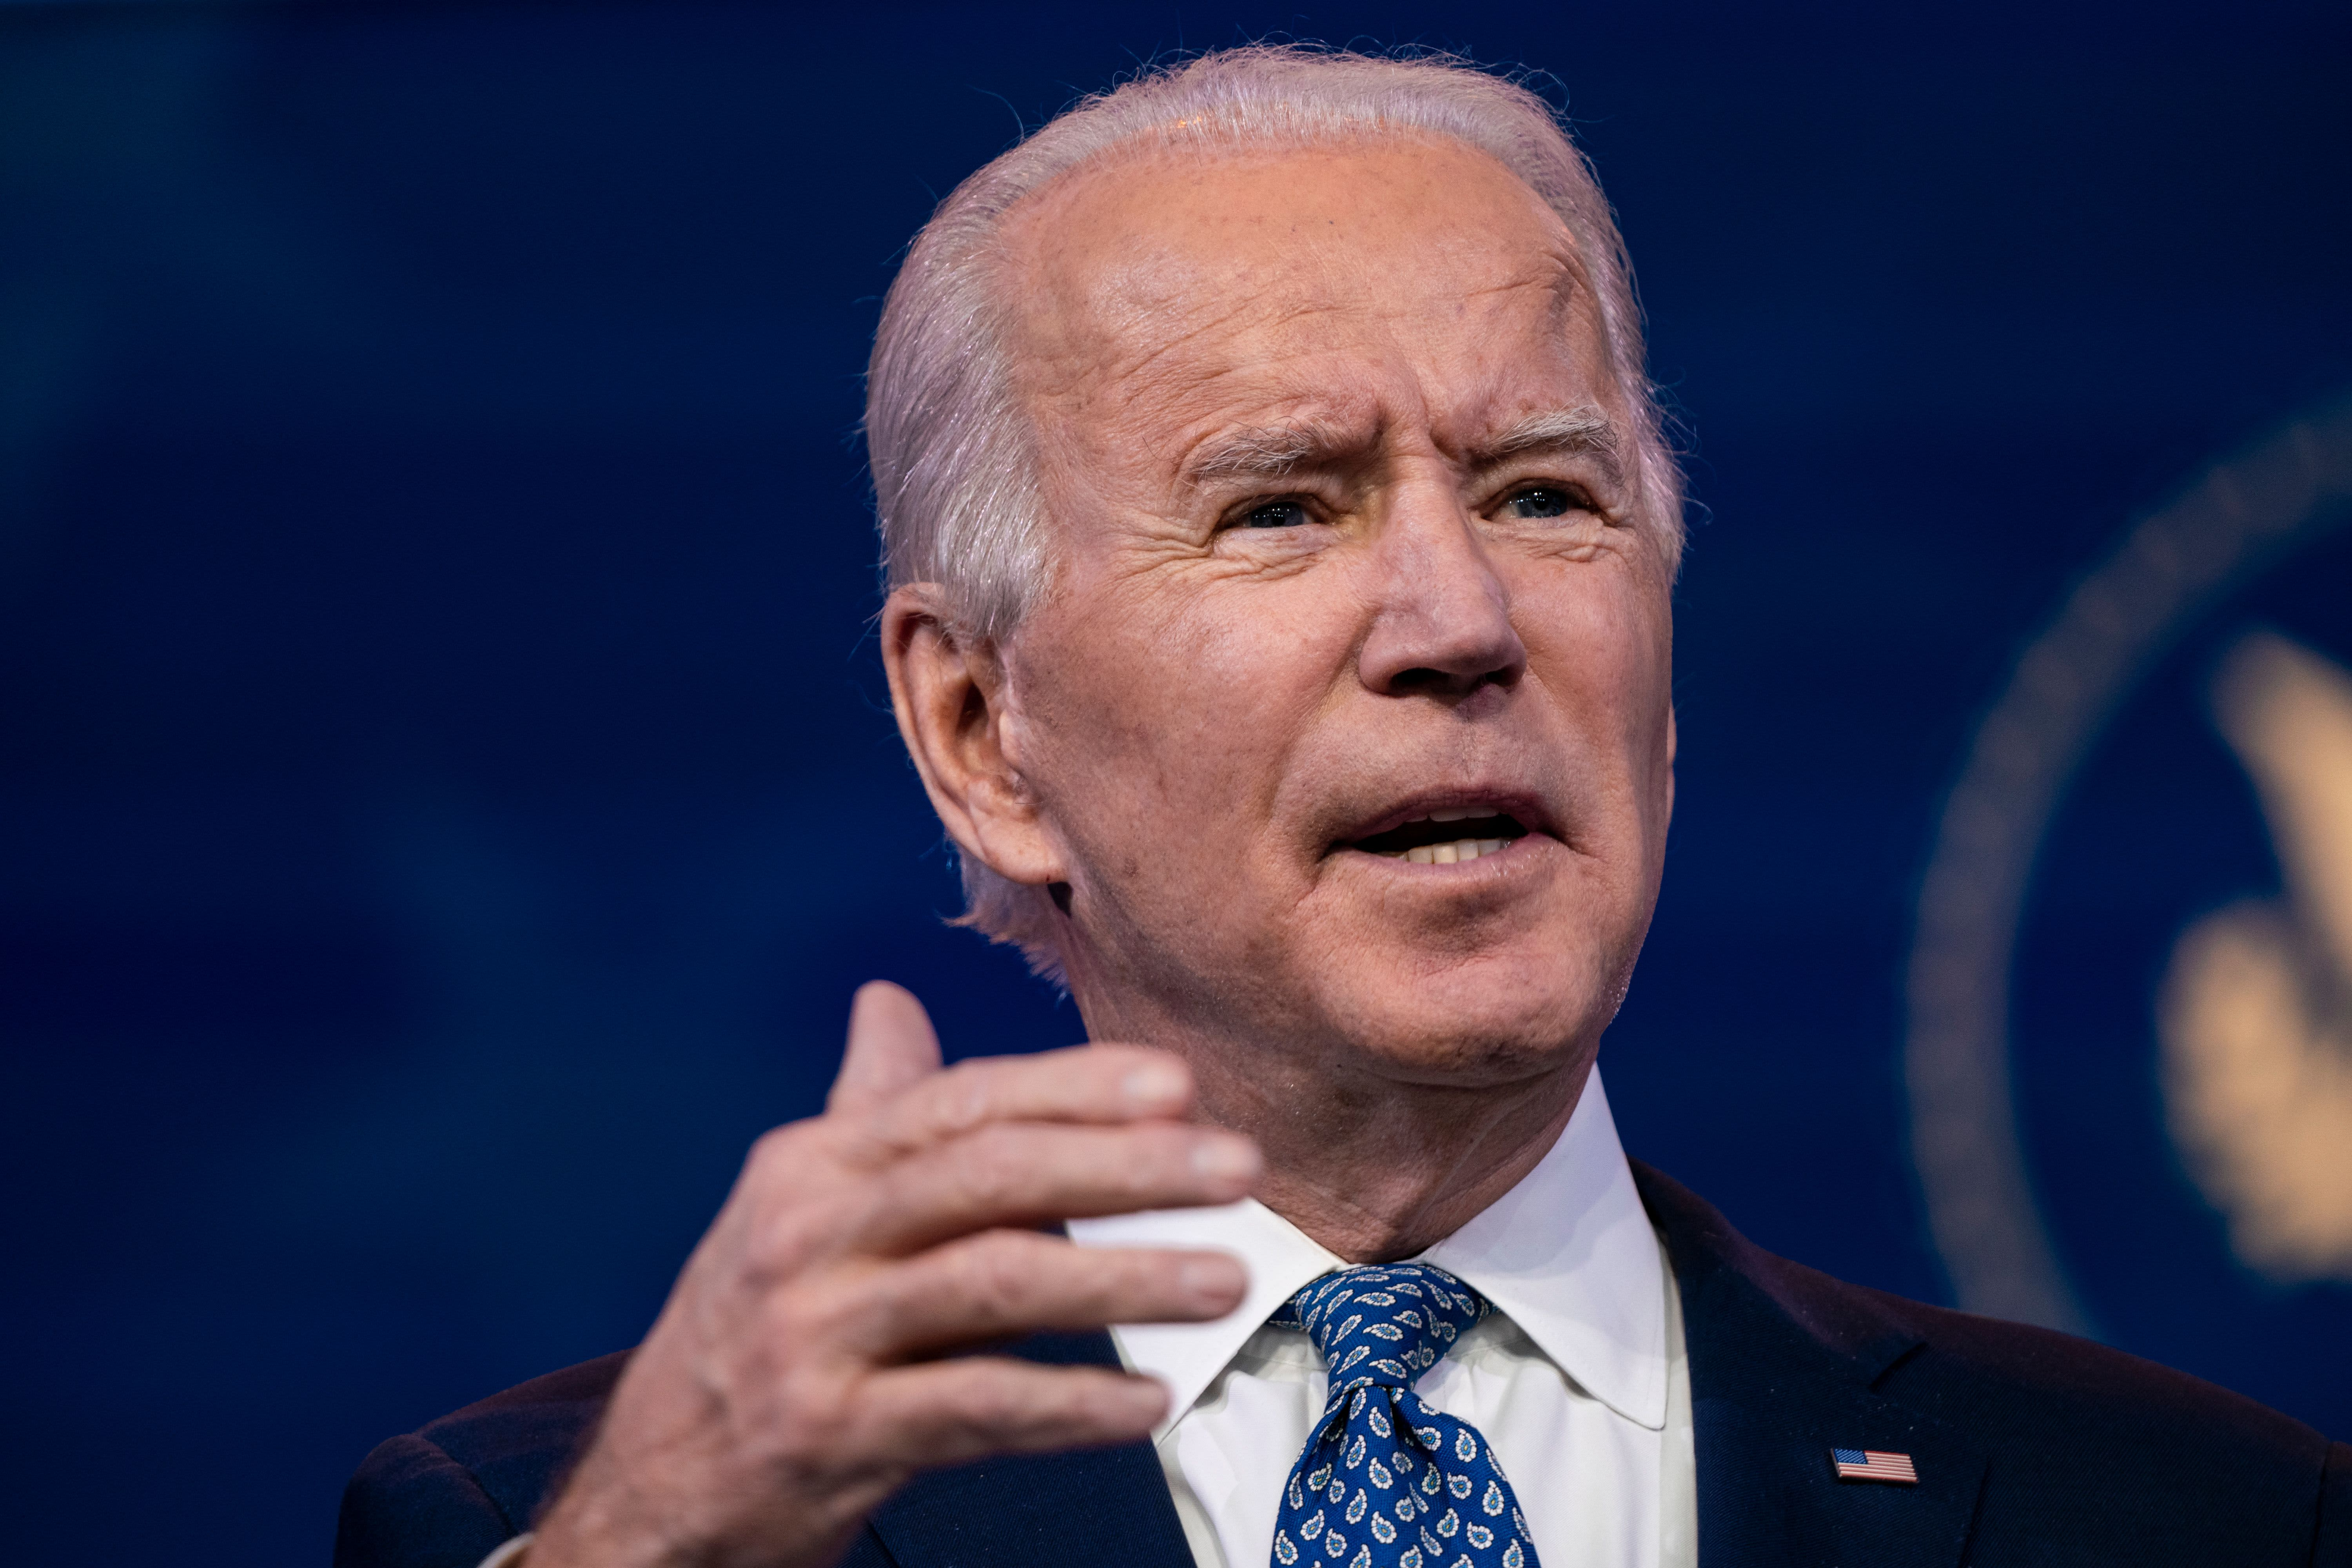 Biden slams Trump's vaccine effort, reiterates plan to administer 100 million doses in 100 days